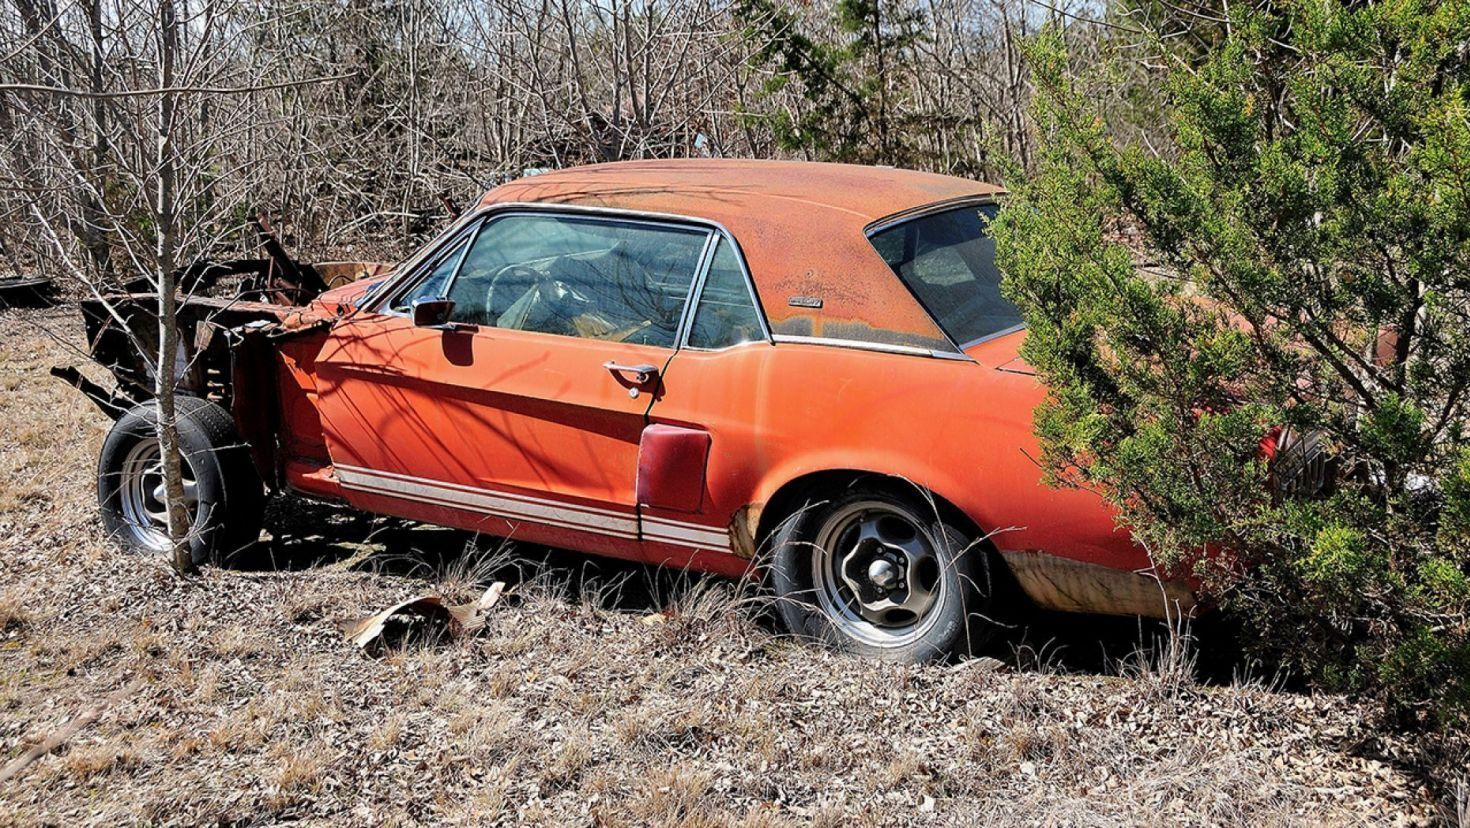 Long Lost Little Red 1967 Mustang Shelby Gt500 Worth Millions